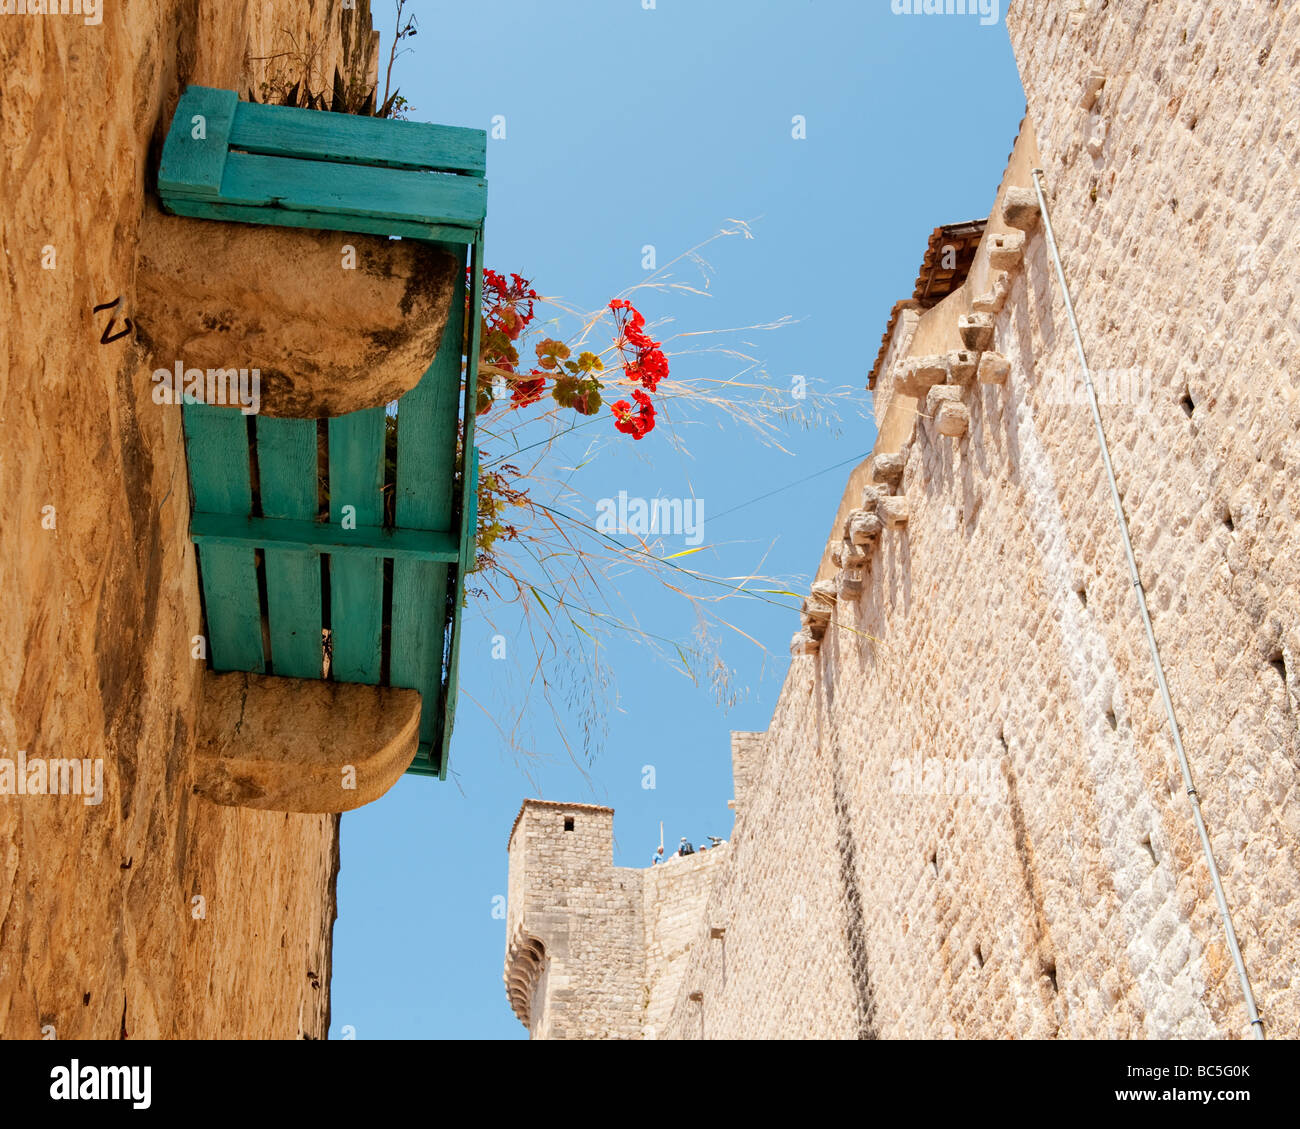 Flower box on a house inside the high city walls of Dubrovnik, Croatia.  Tourists can be seen on the wall. - Stock Image